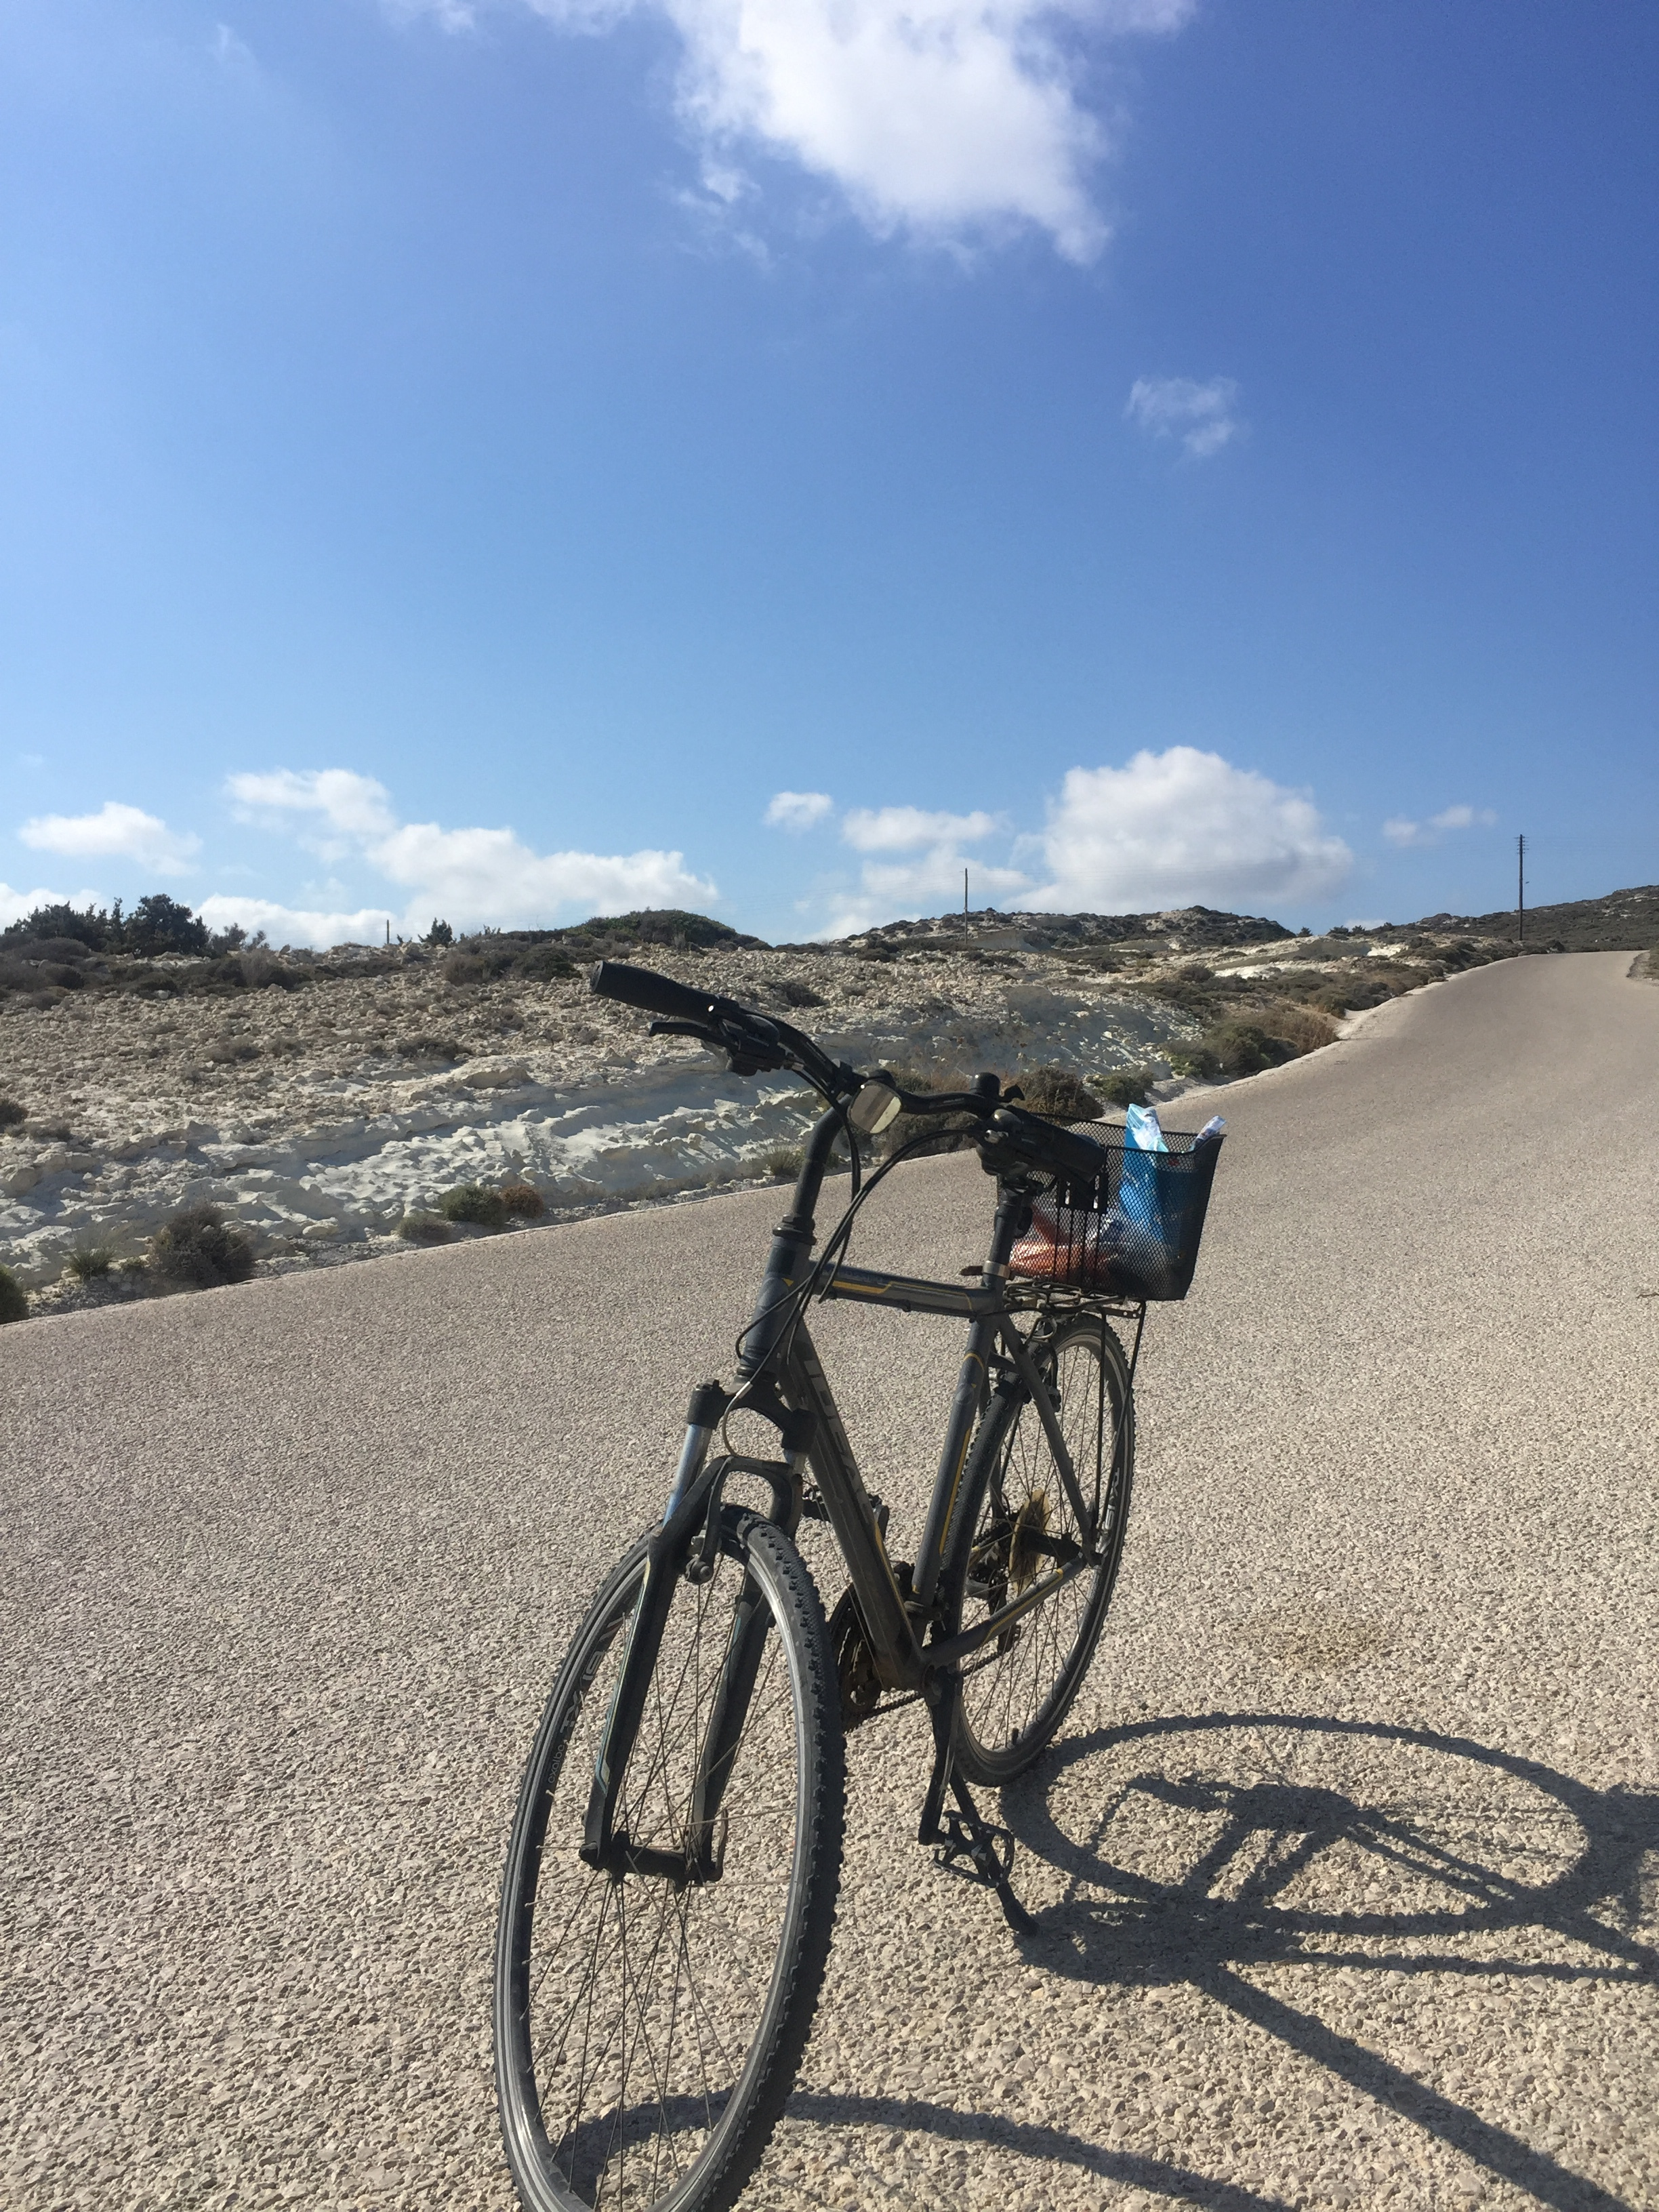 No matter where I travel to, renting a bicycle is always at the top of my to-do list. This is cycling from Adamantos to Sarakiniko, in the Greek island of Milos.